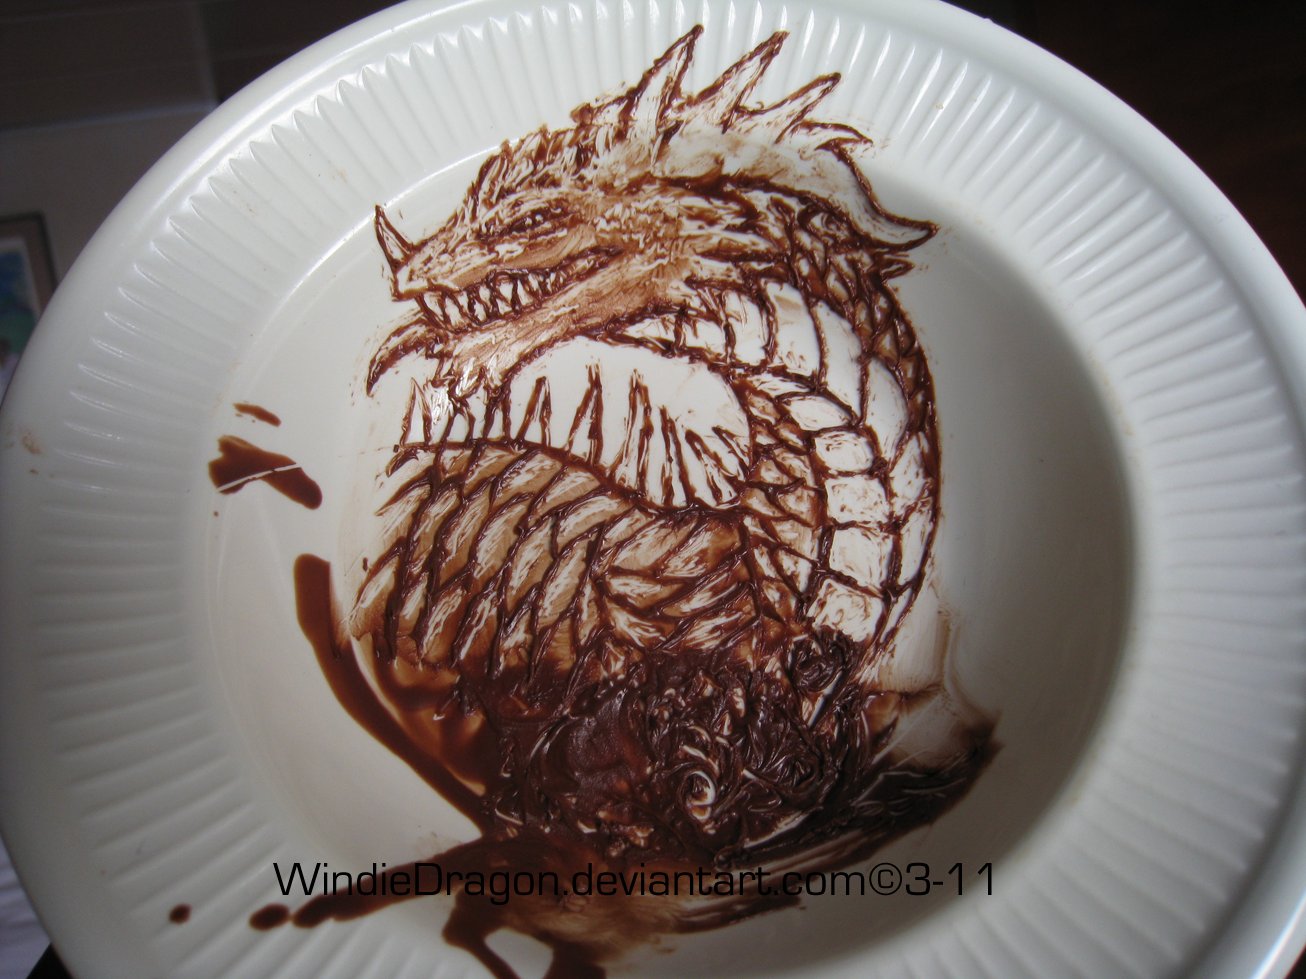 Chocolate Dragon by WindieDragon